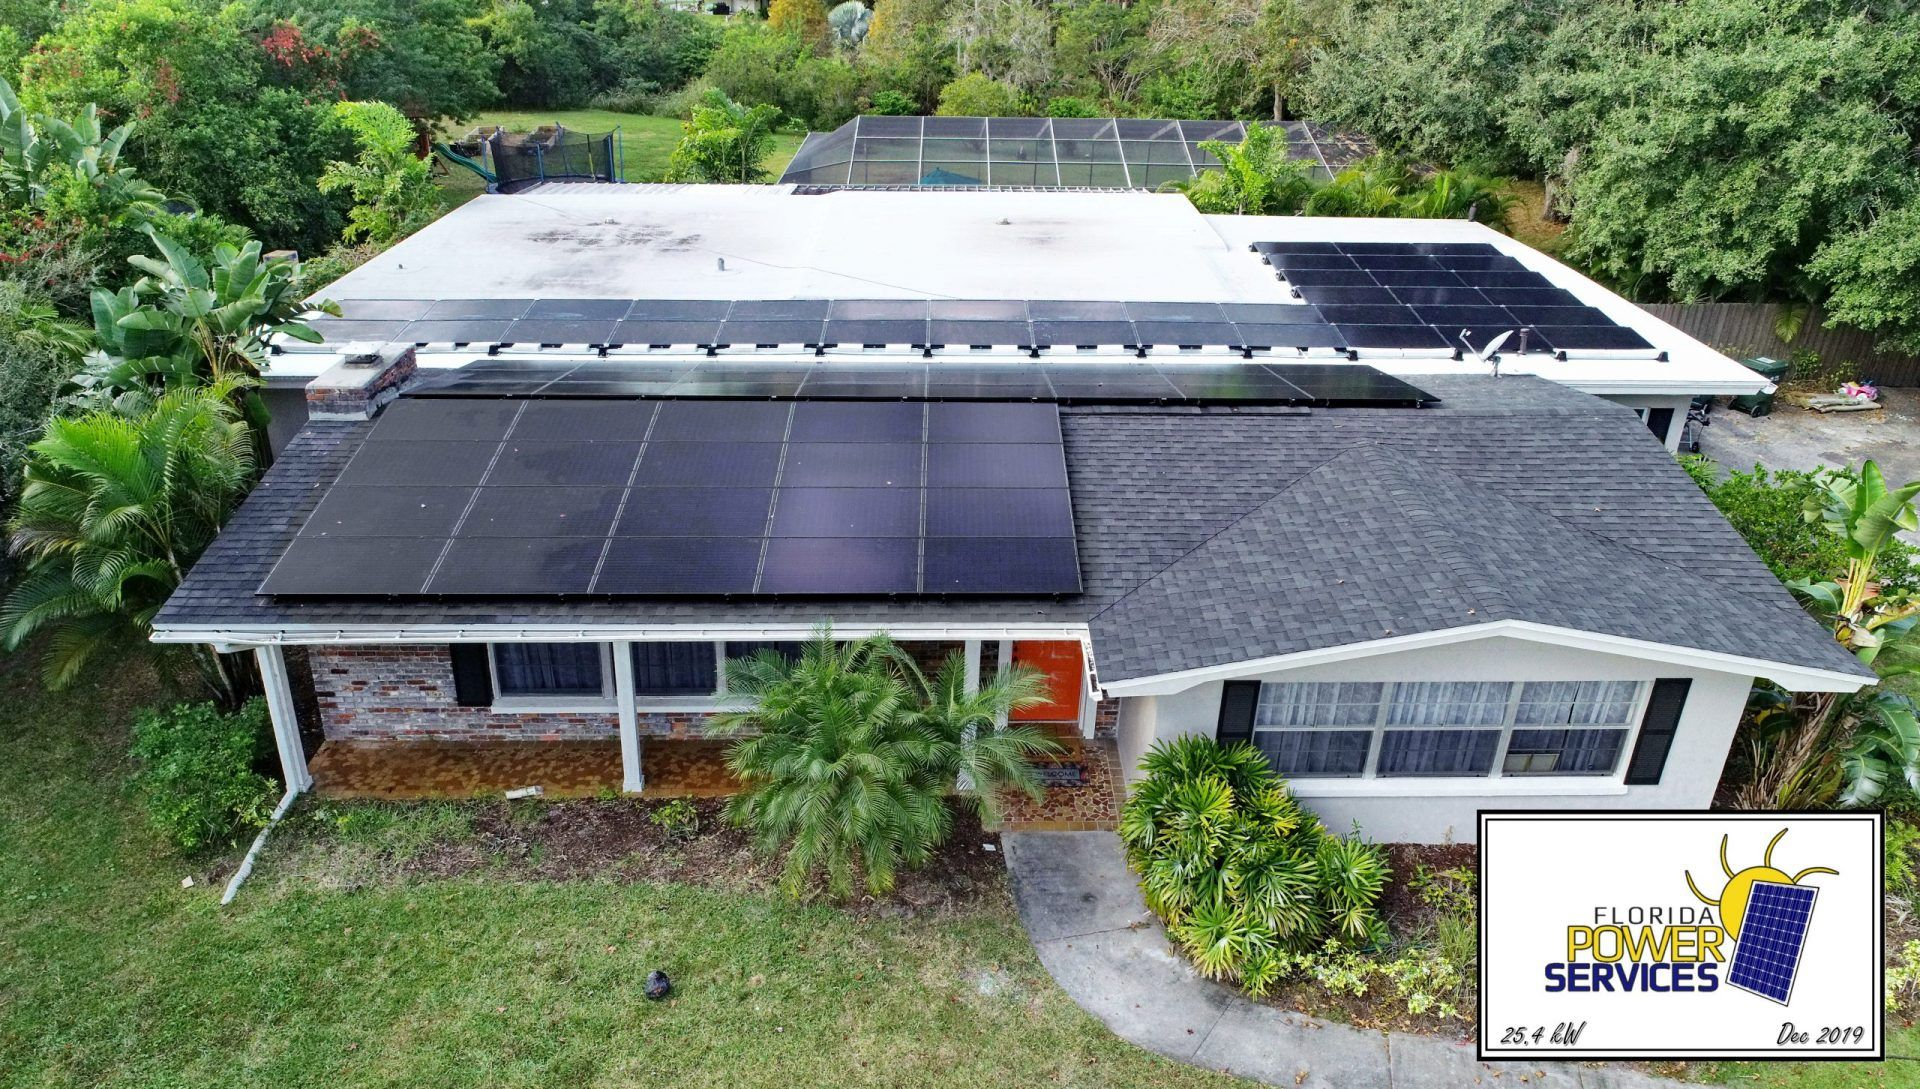 25.4 kW Clearwater Residential Solar Install